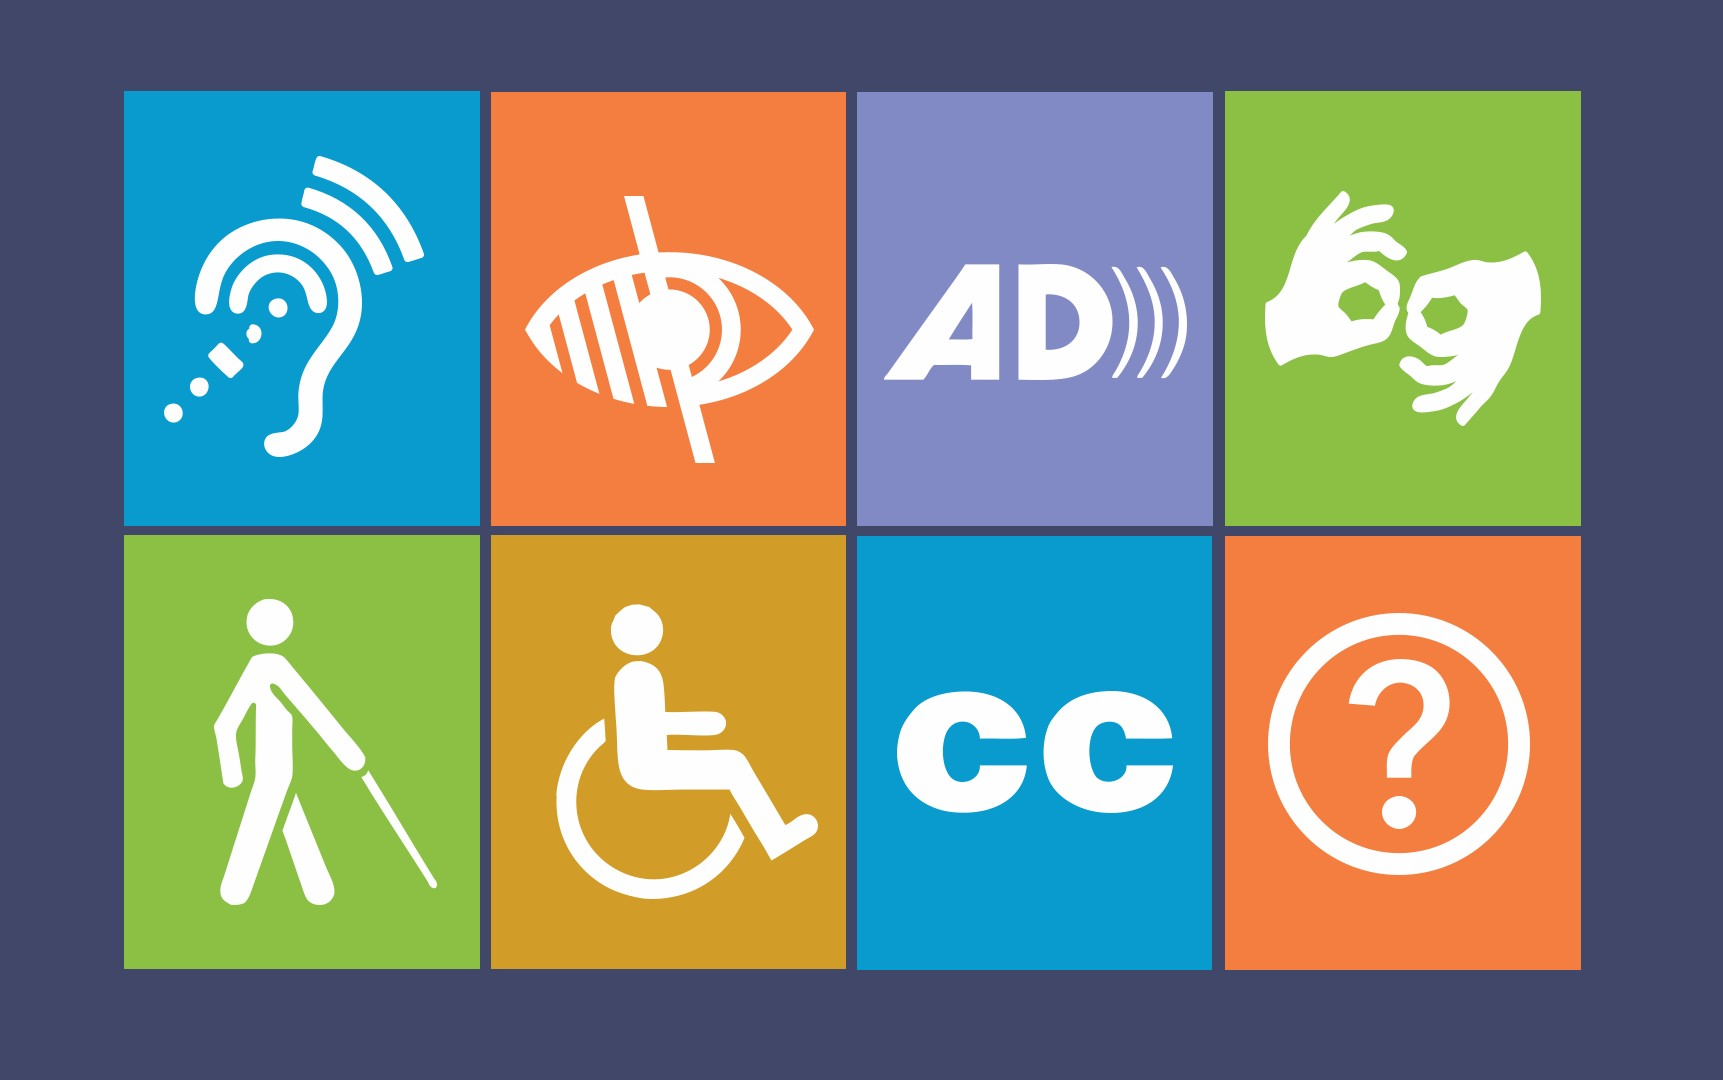 Disability icons: hearing, low vision, AD, sign language, blindness, physical disability, cc, information